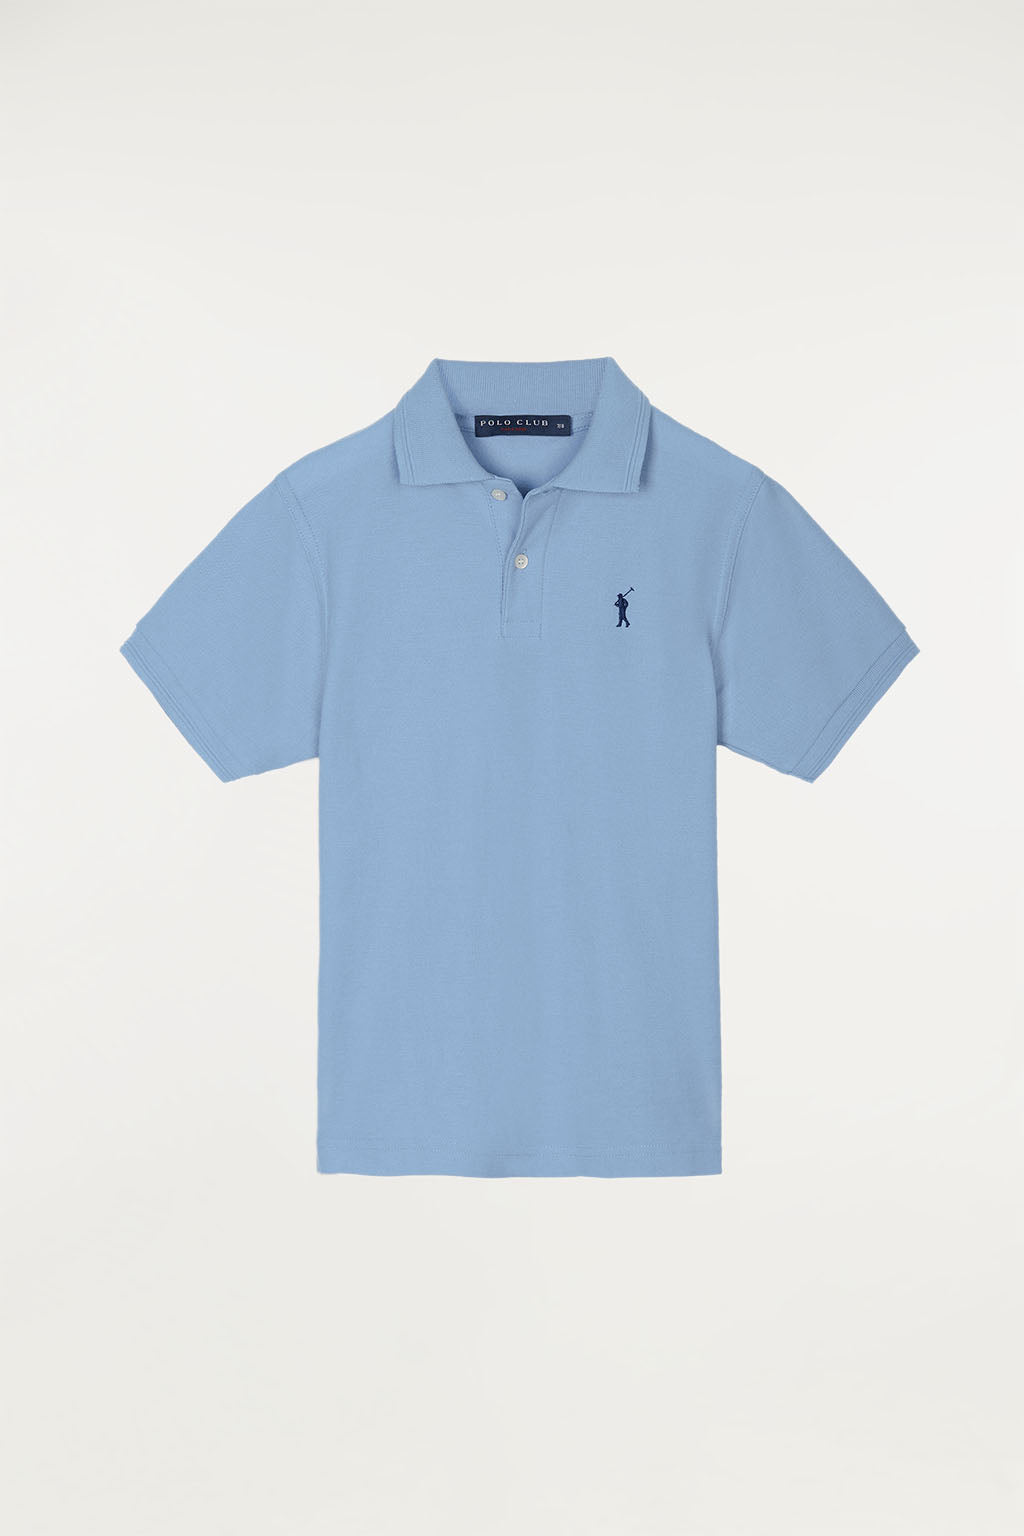 Sky blue polo shirt for kids with contrast embroidered logo